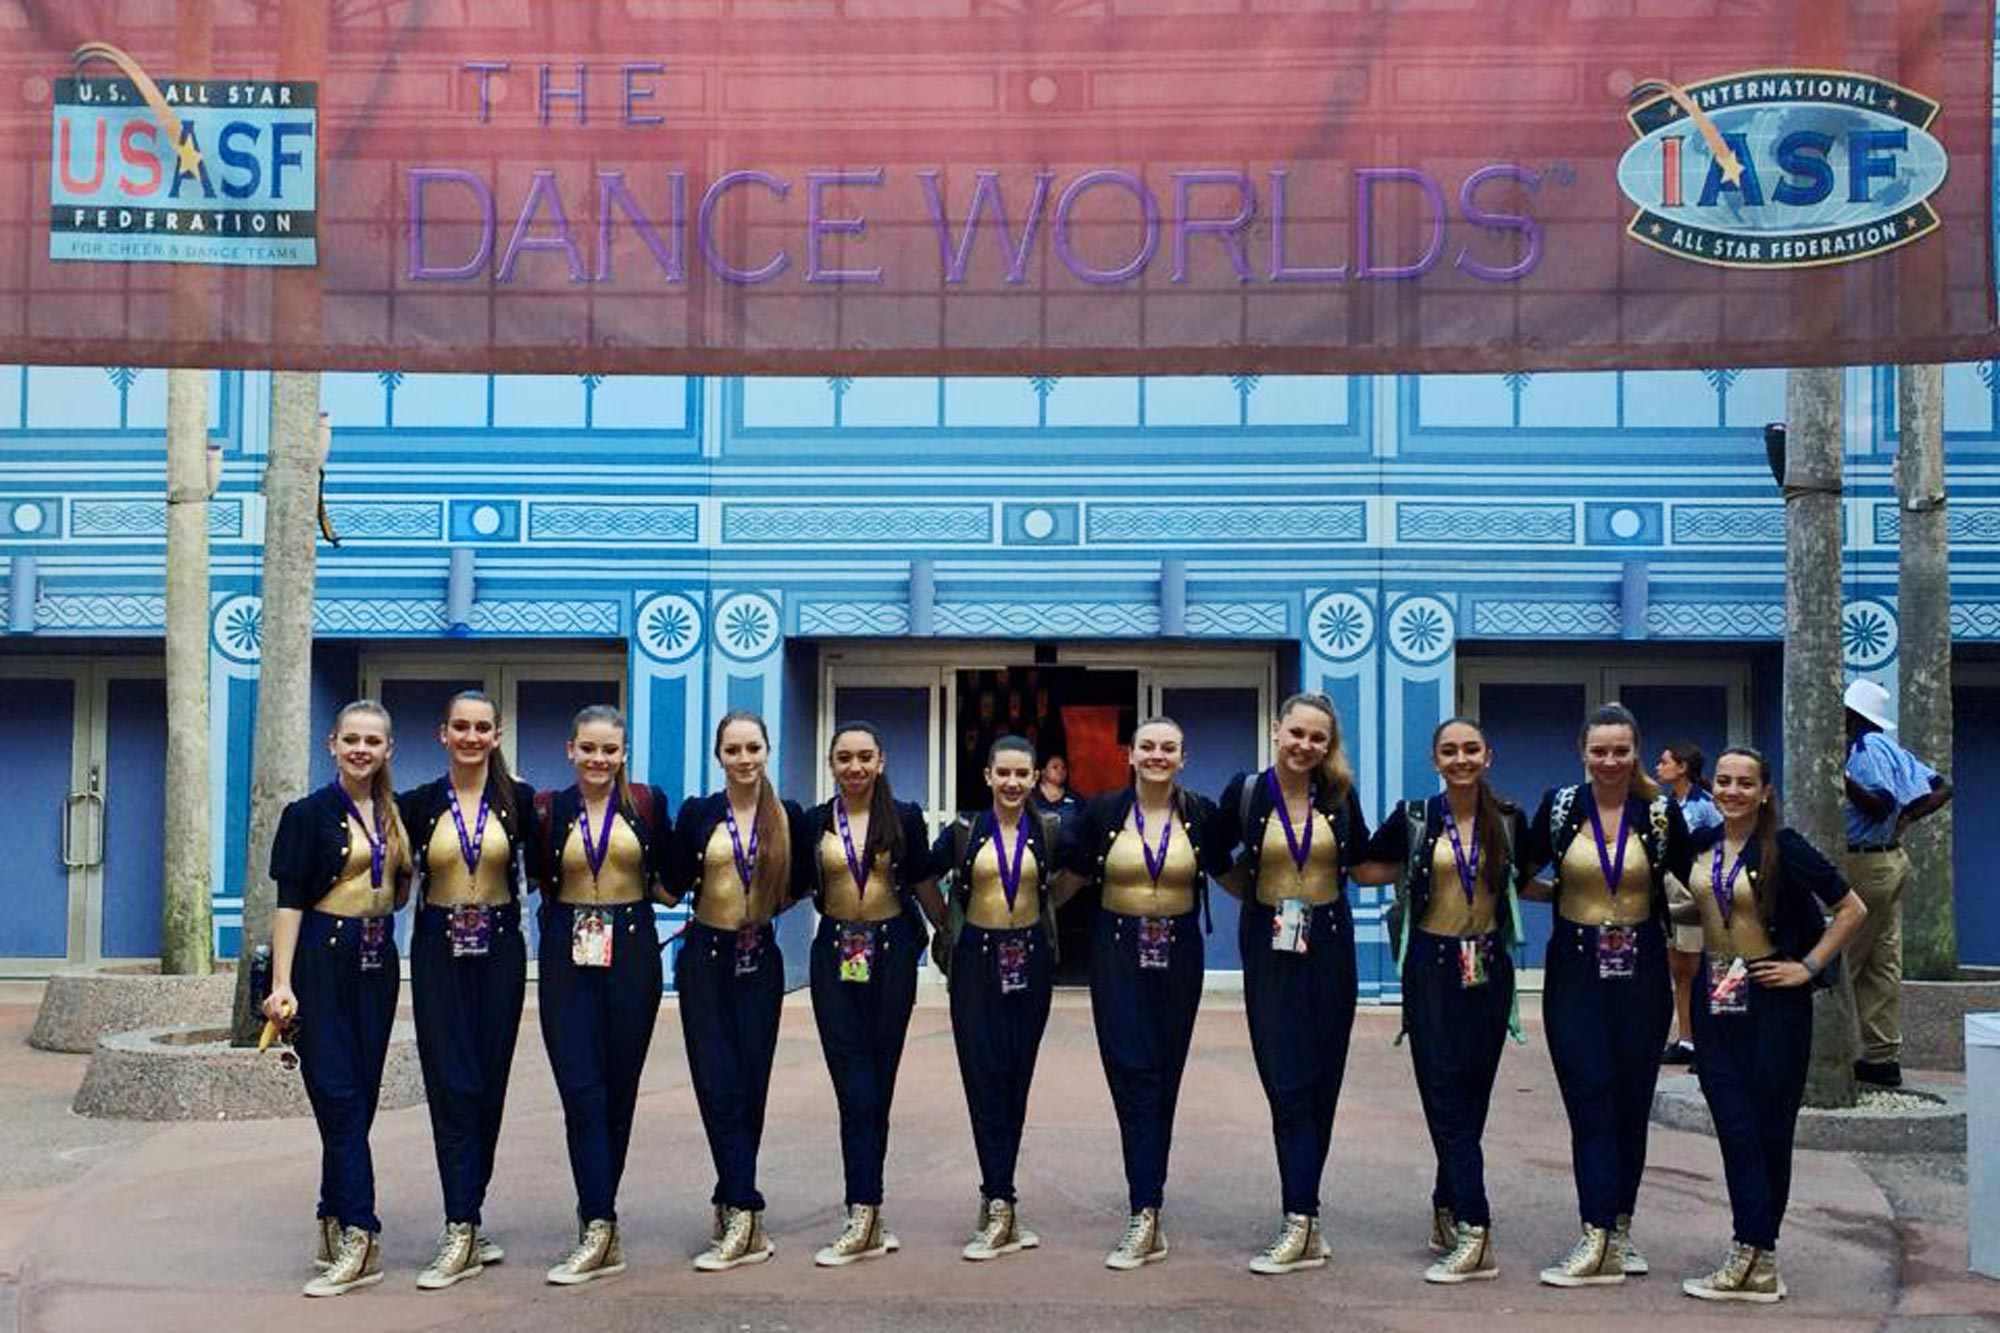 girl dance team in matching uniforms posing together